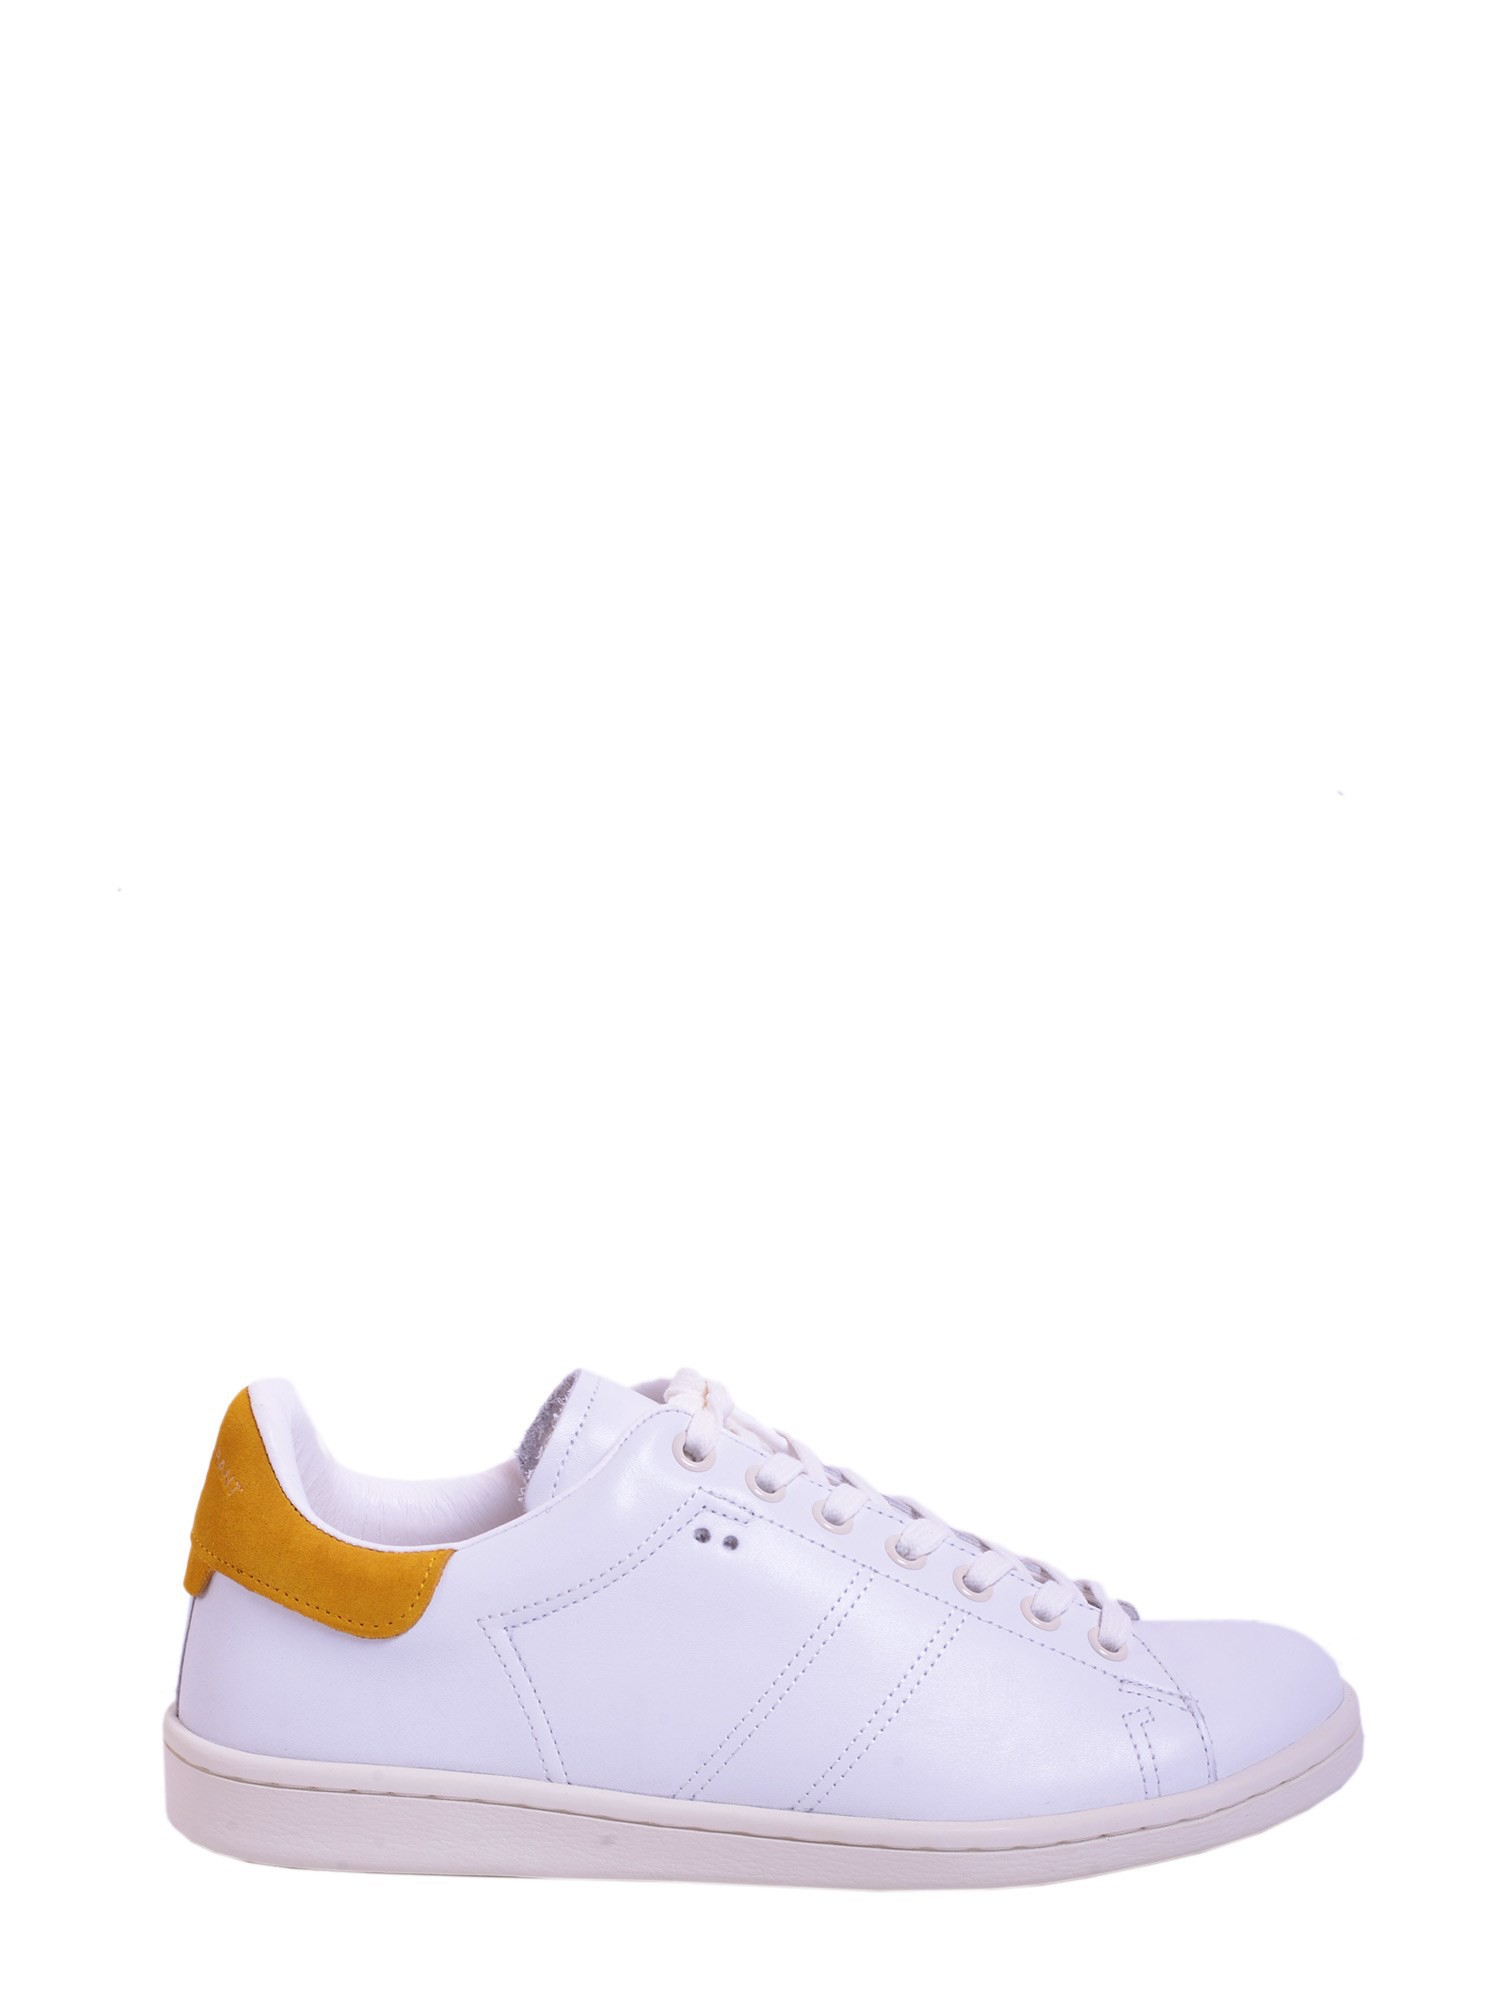 toile isabel marant bart sneakers in white bianco lyst. Black Bedroom Furniture Sets. Home Design Ideas